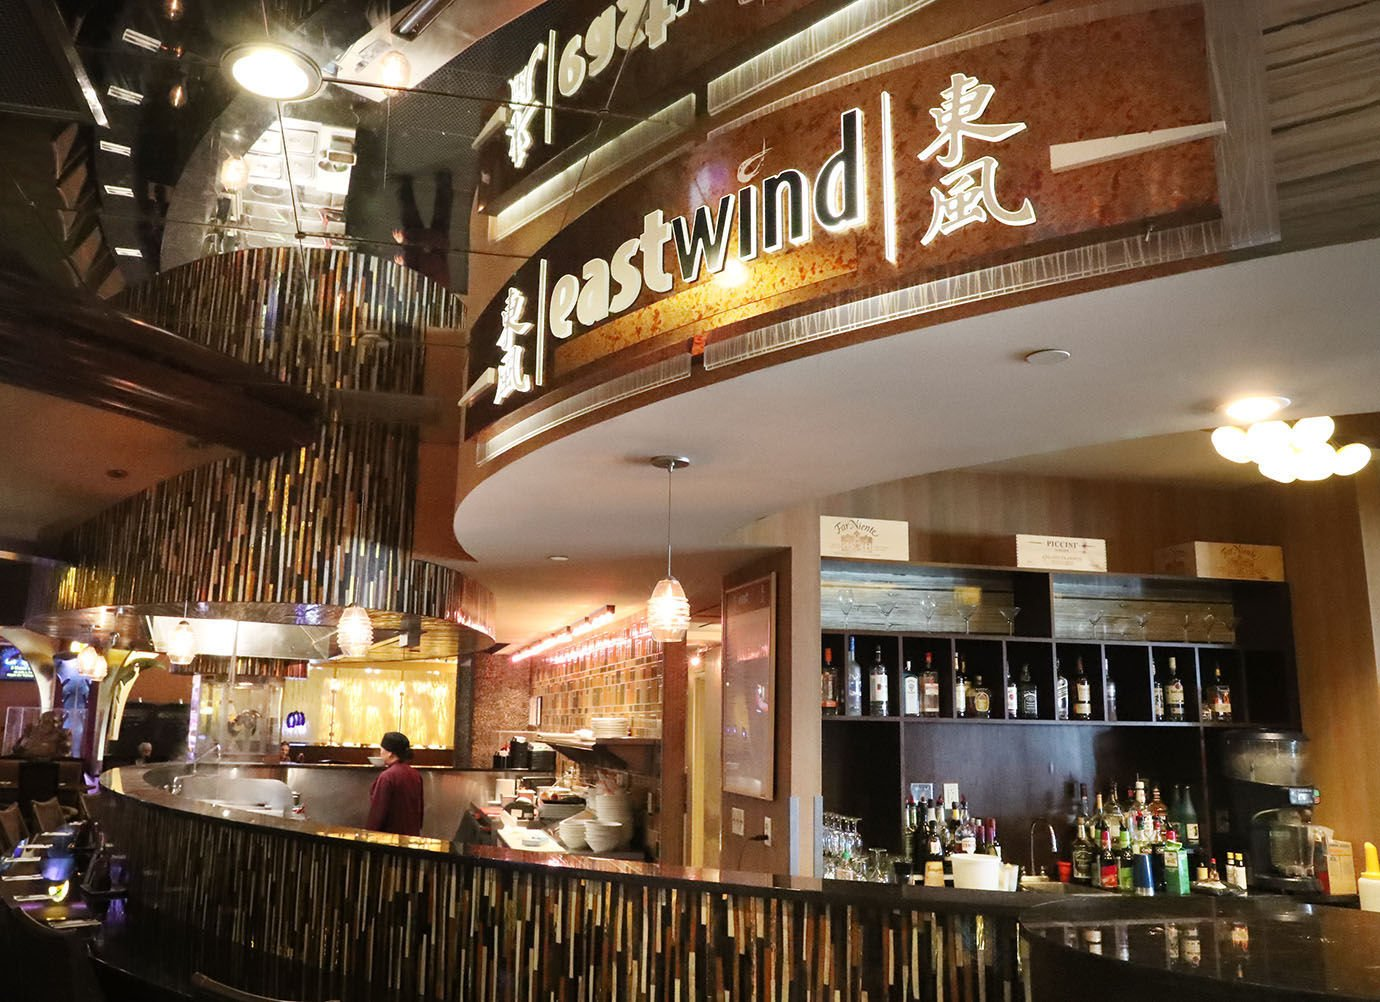 Eastwind makes itself a destination with new